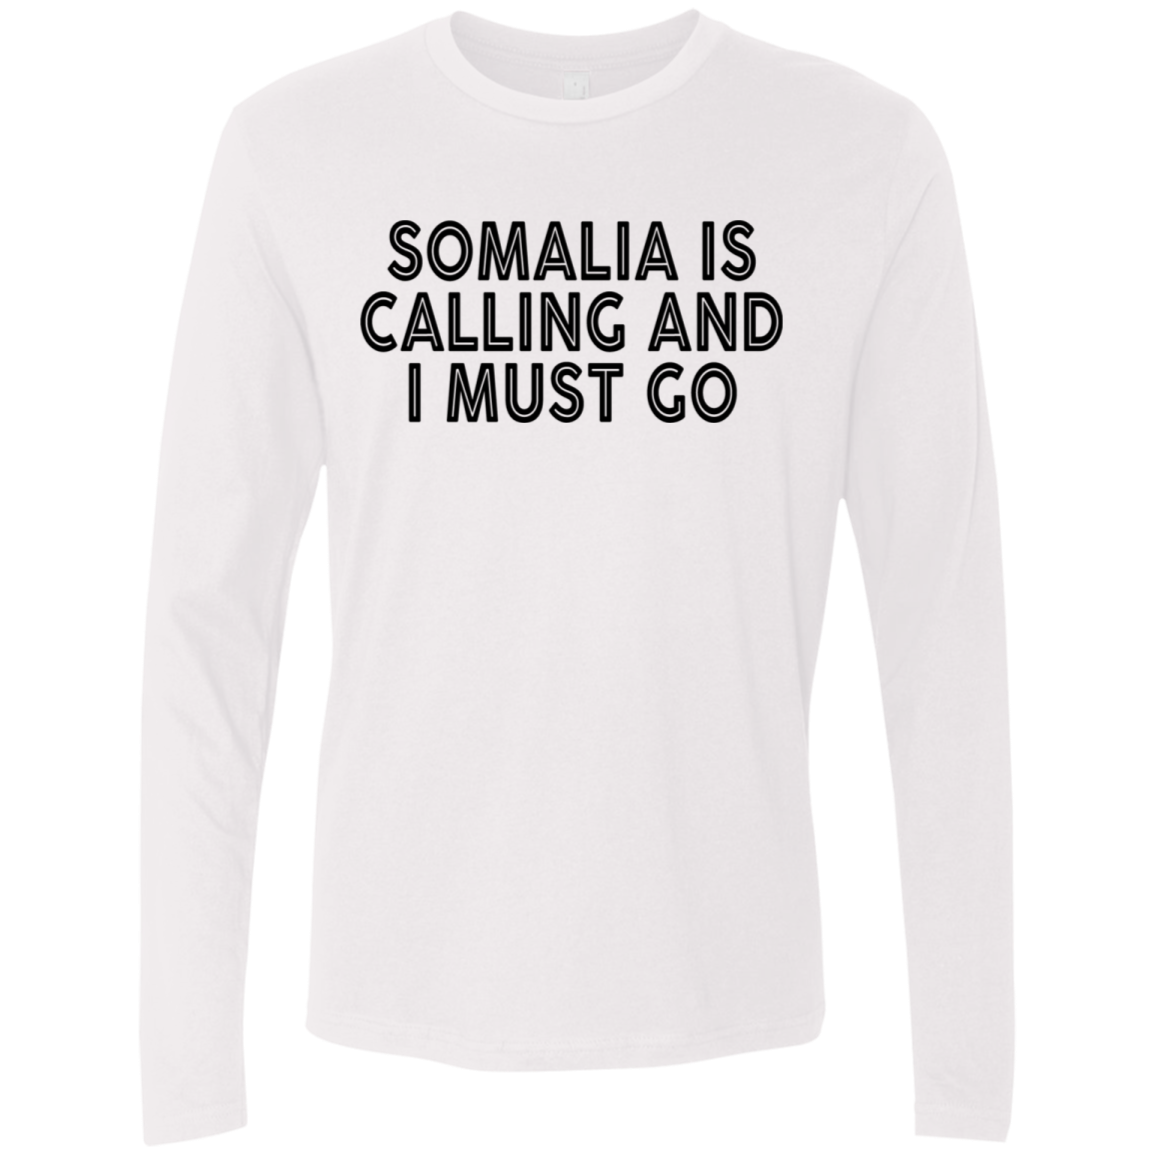 Somalia Is Calling And I Must Go Men's Long Sleeve Tee